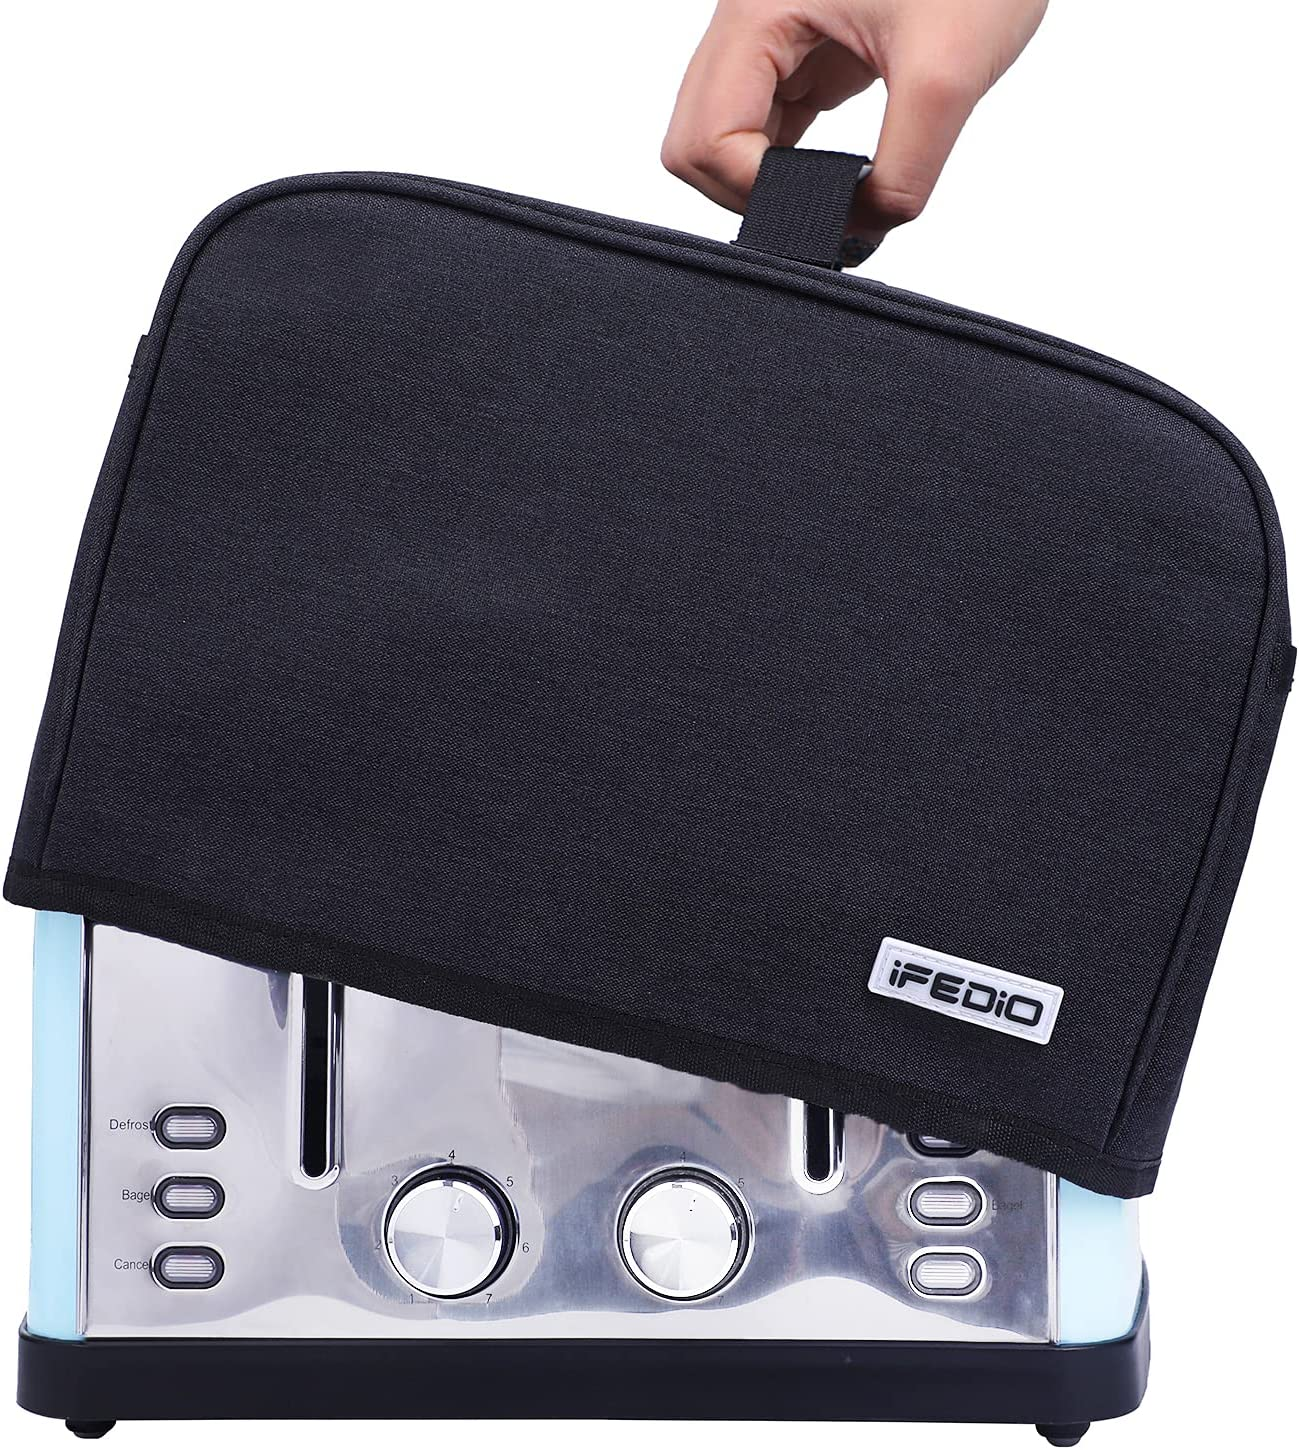 iFedio 4 Slice Toaster Cover with Pockets & Top Handle,Small Appliance Toaster Dust Cover, Machine Washable(Black)